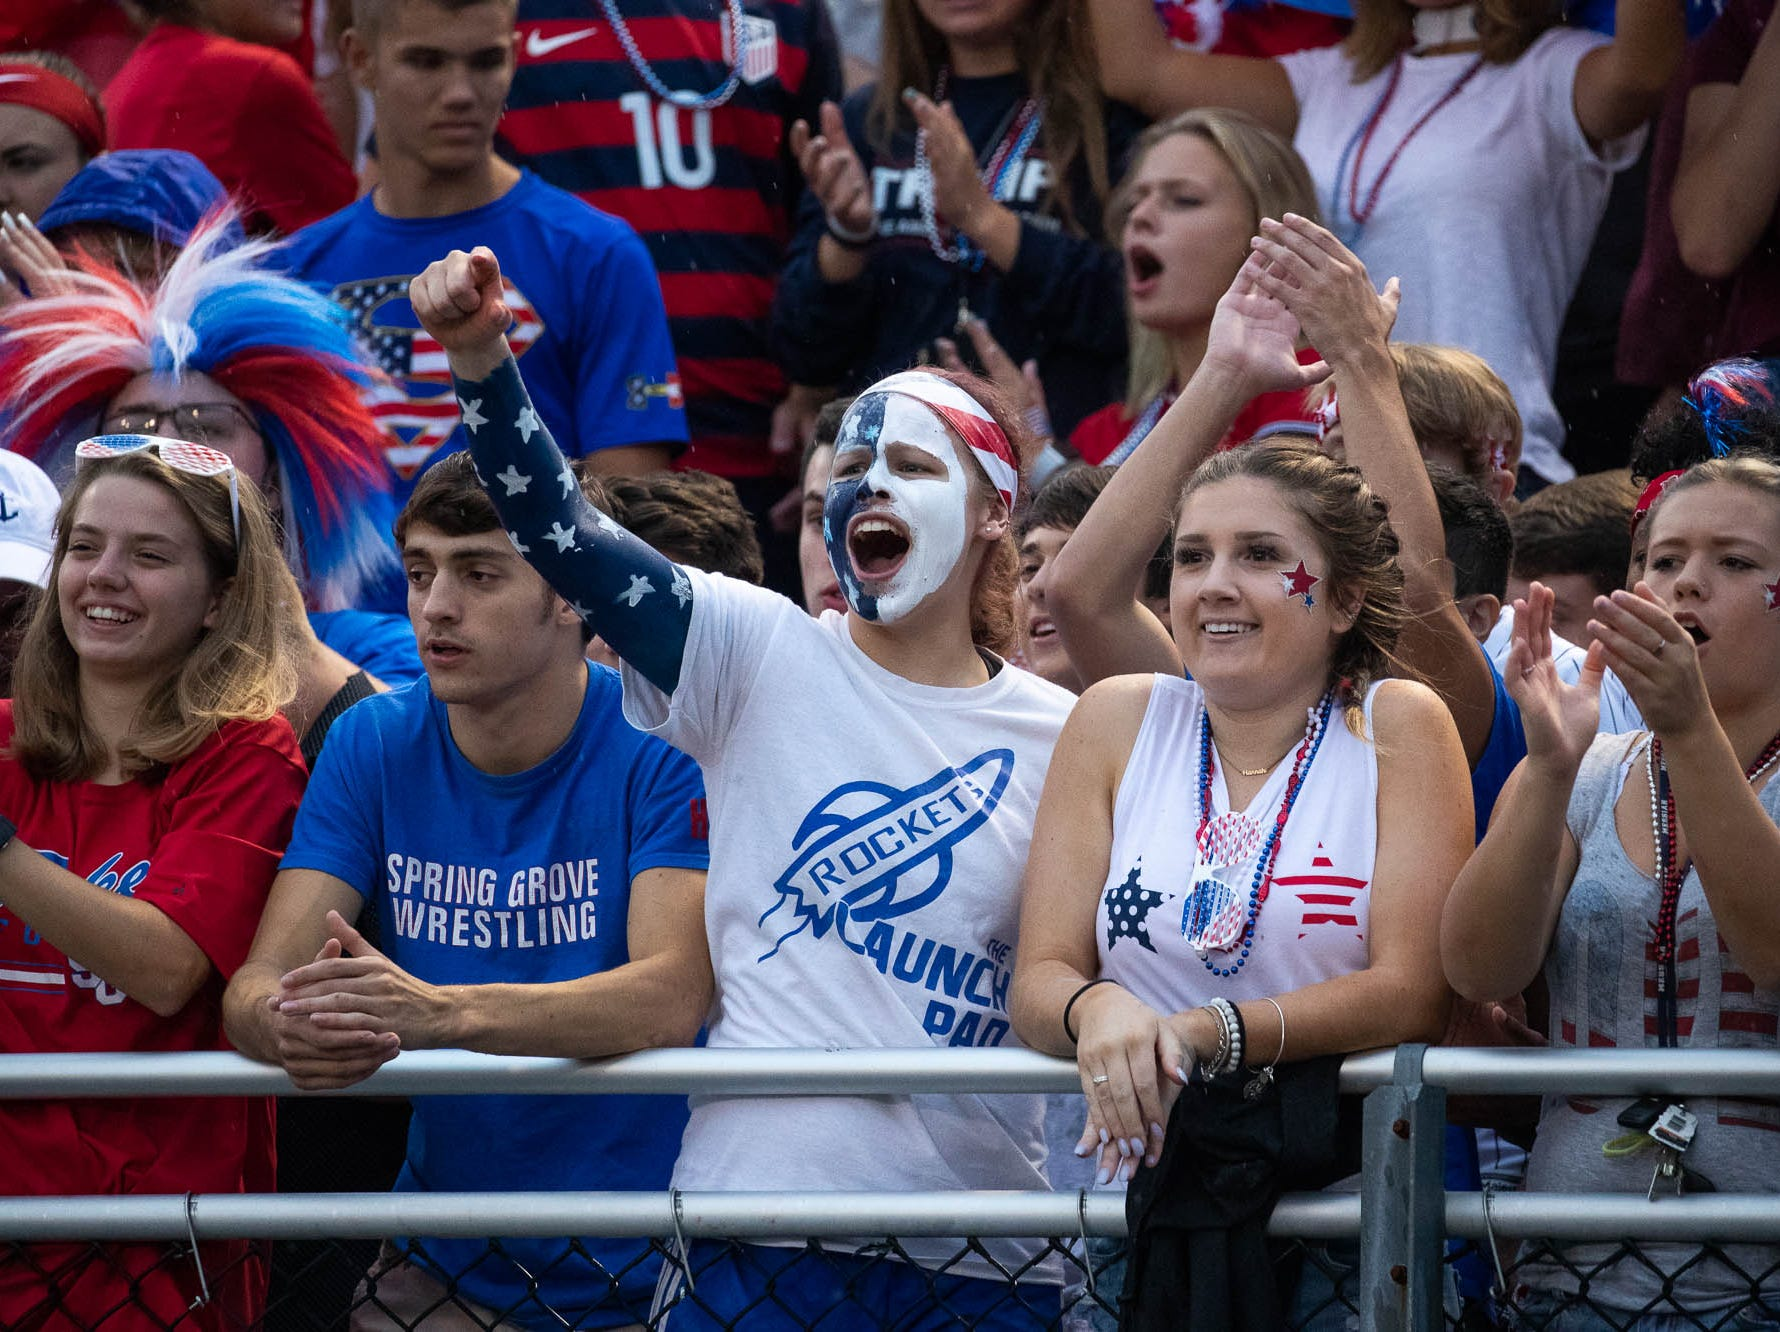 Spring Grove students cheer during a football game between Muhlenberg and Spring Grove, Friday, Aug. 31, 2018, in Spring Grove.